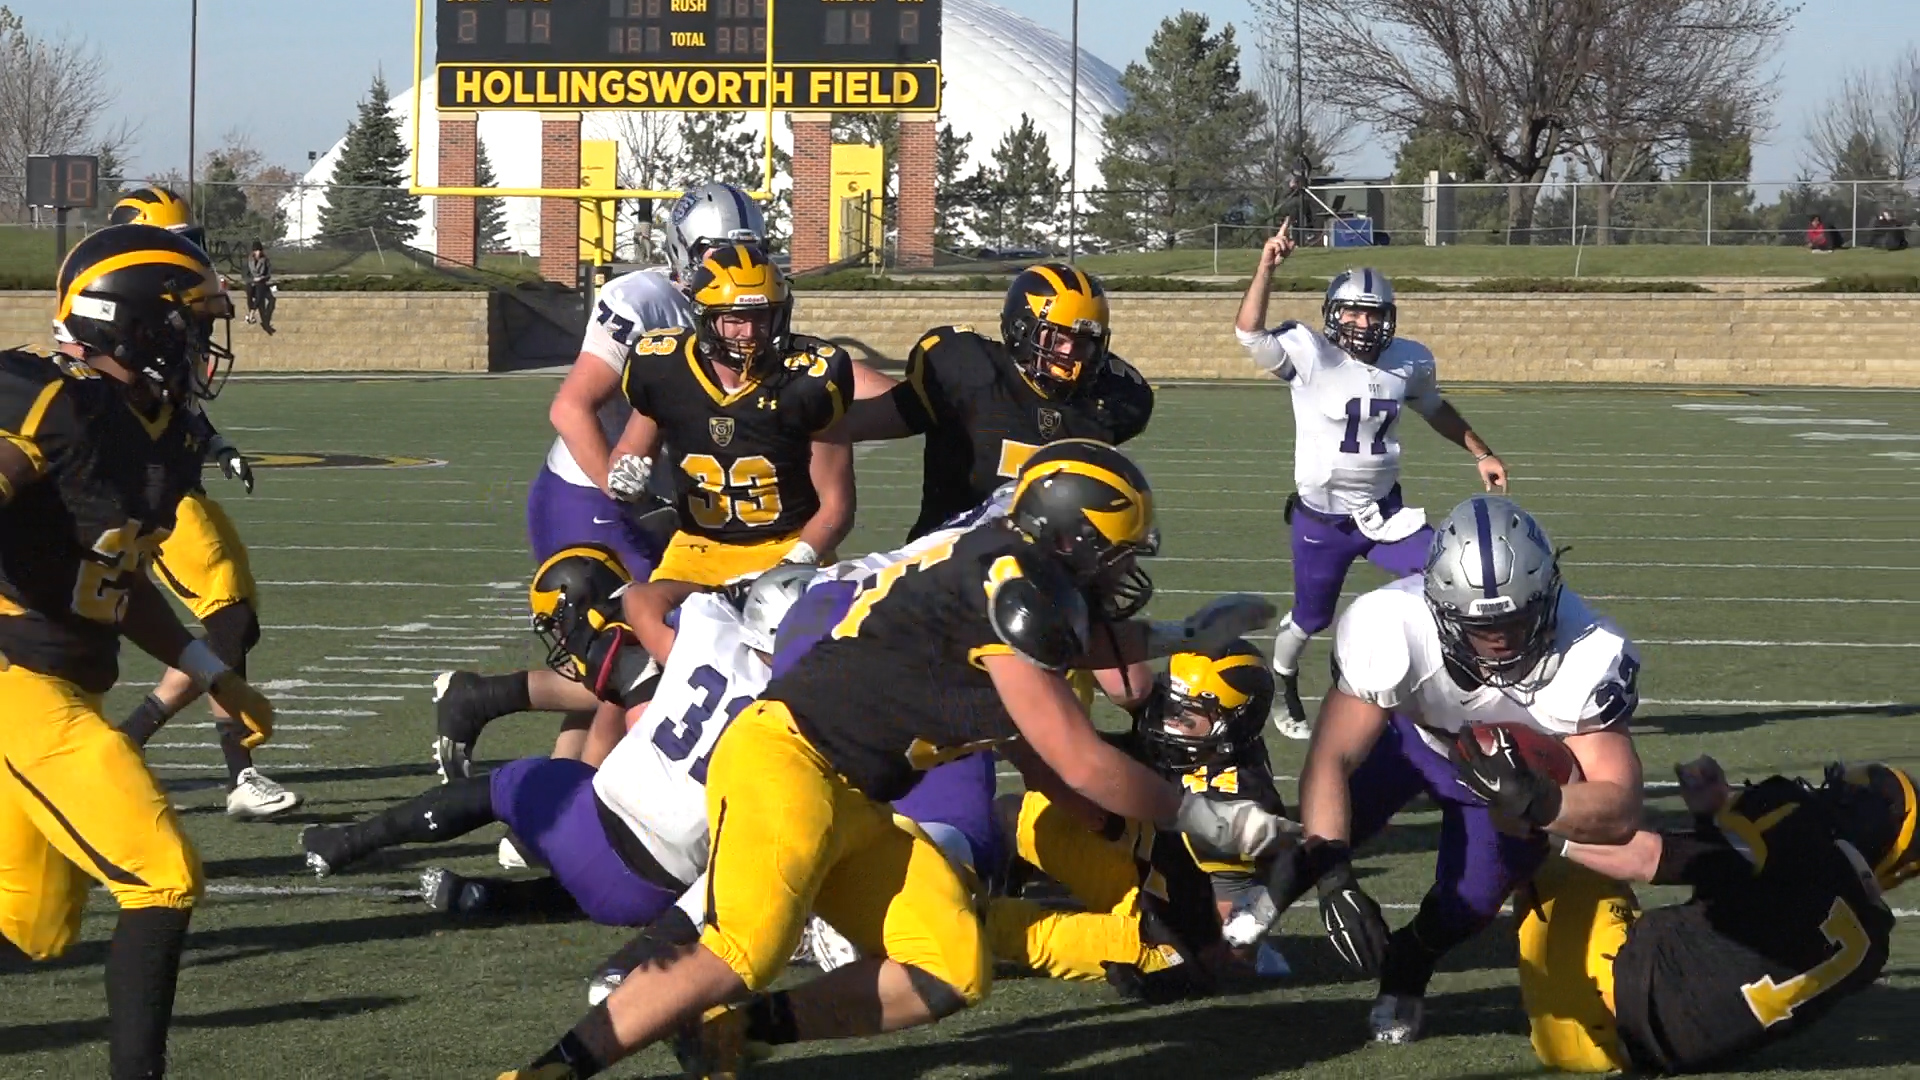 Video: Tommies finish regular season unscathed